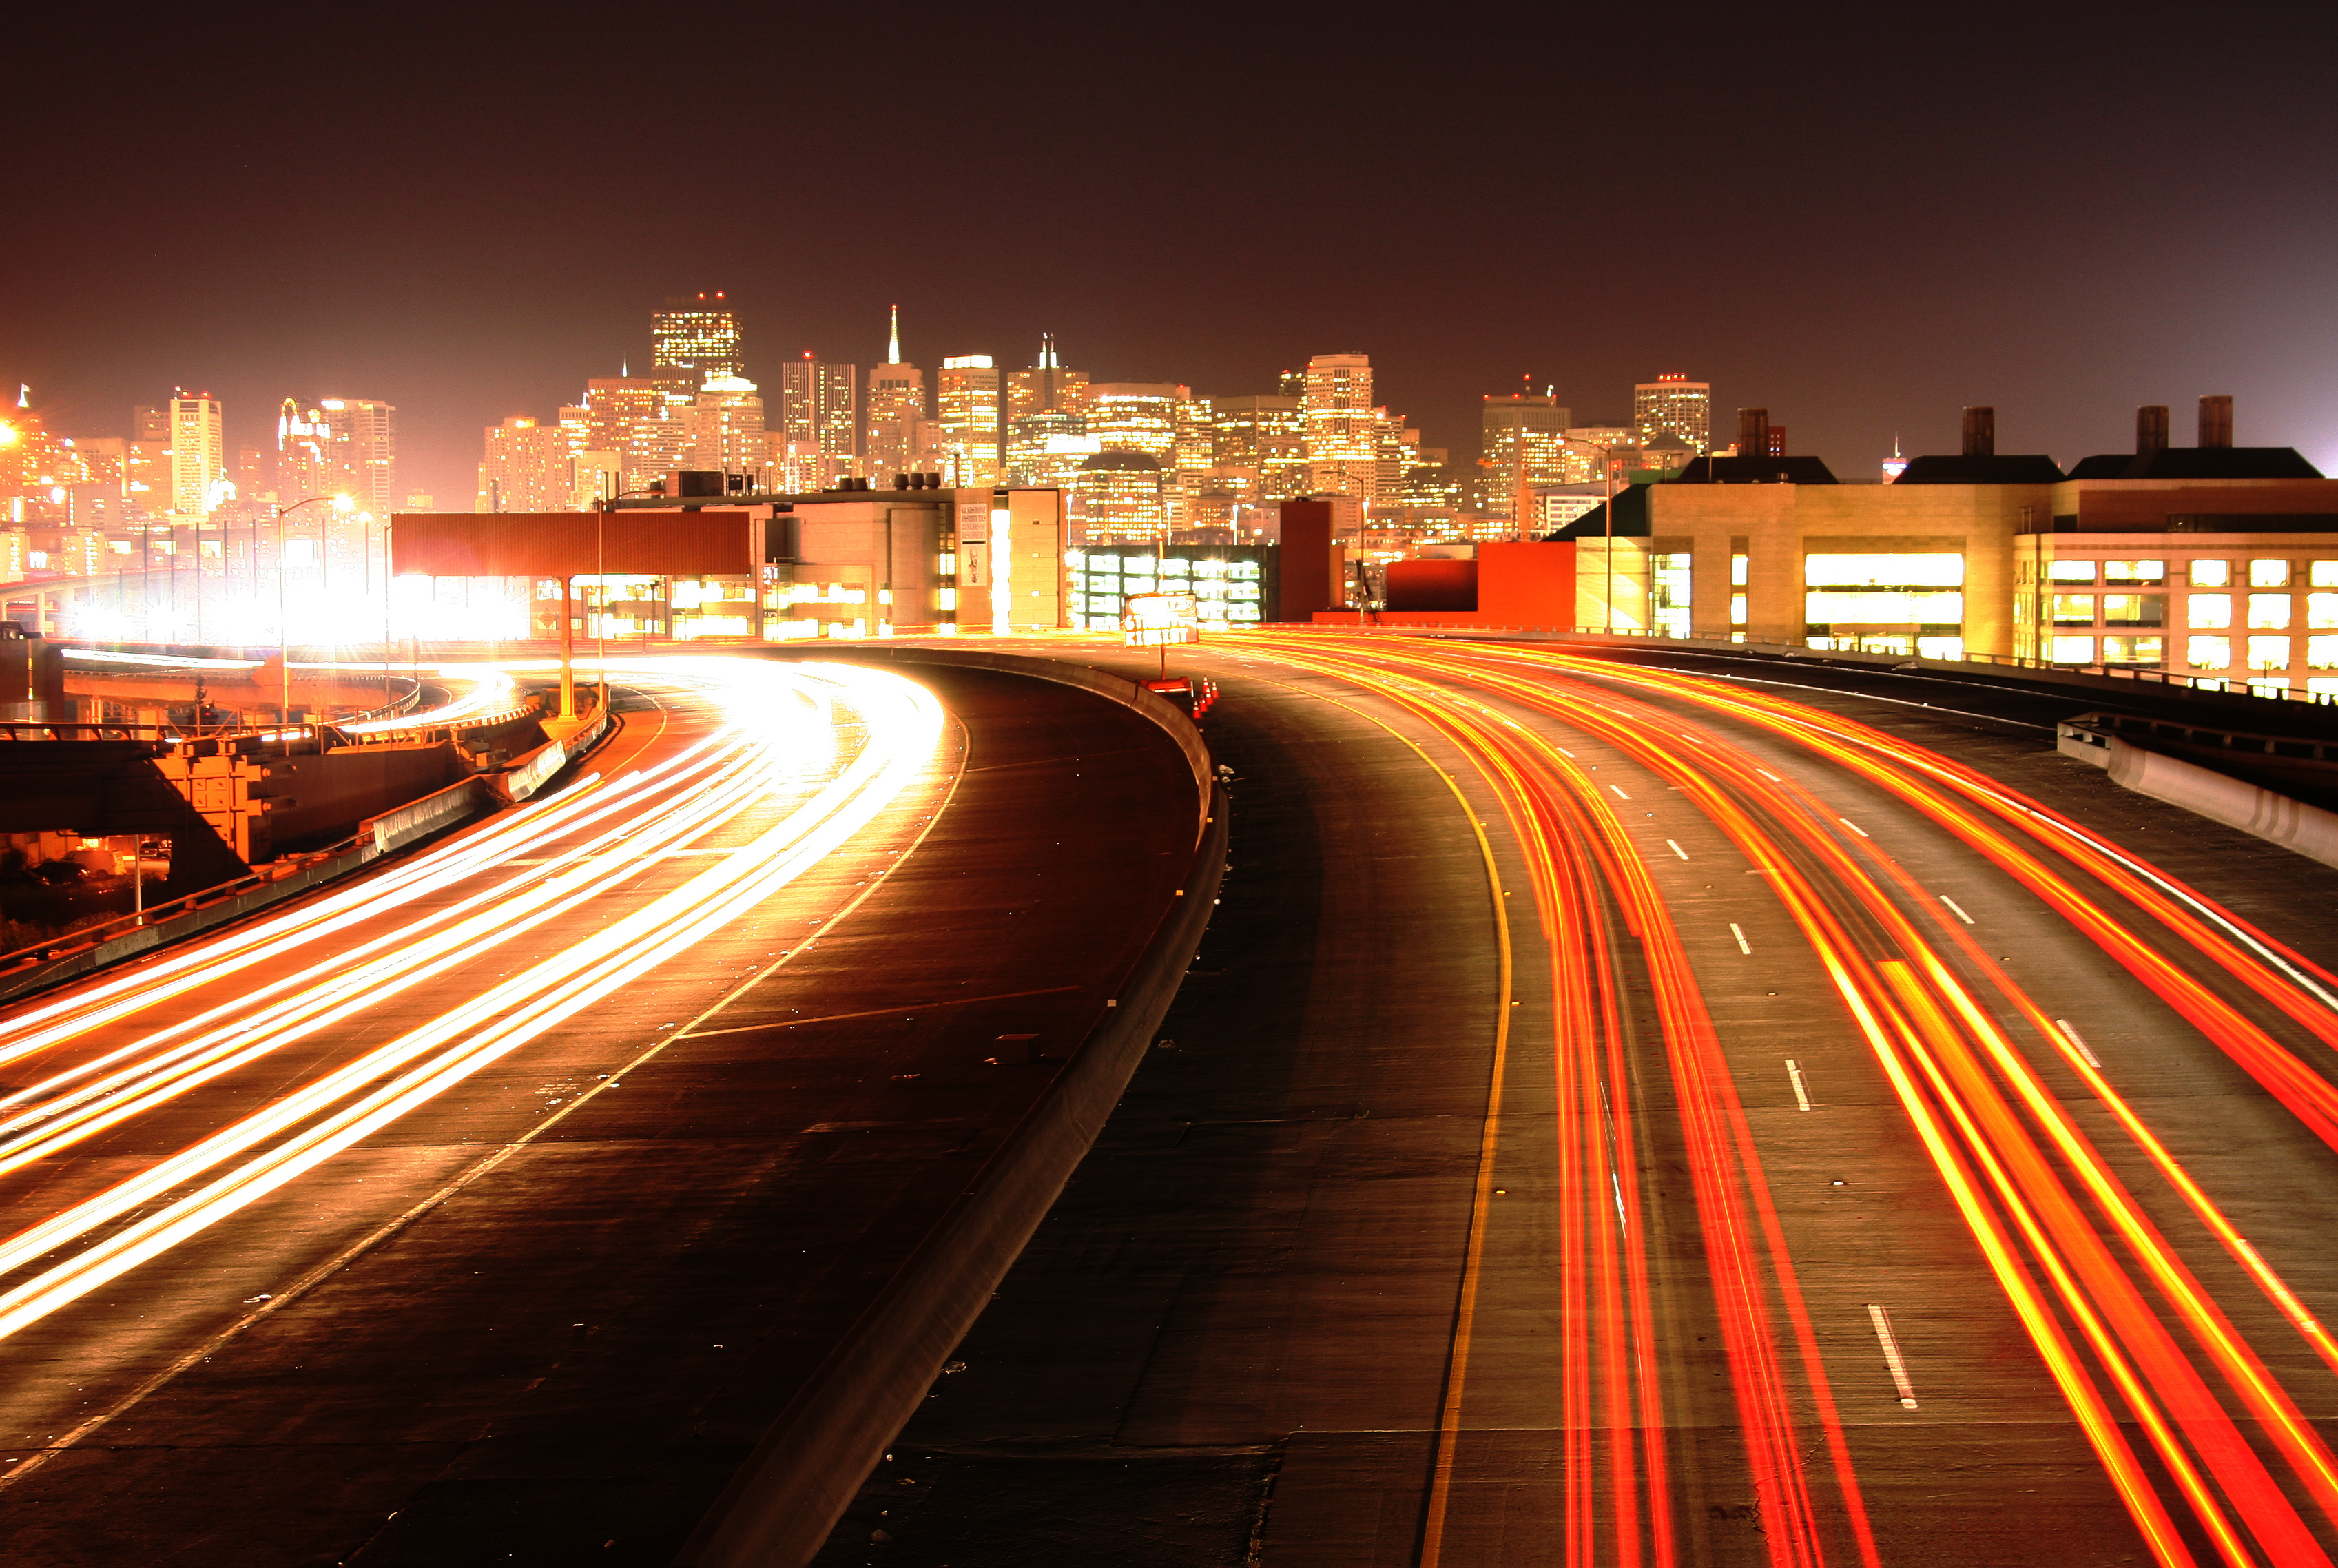 Midnight downtown San Francisco Silicon Valley freeway lights